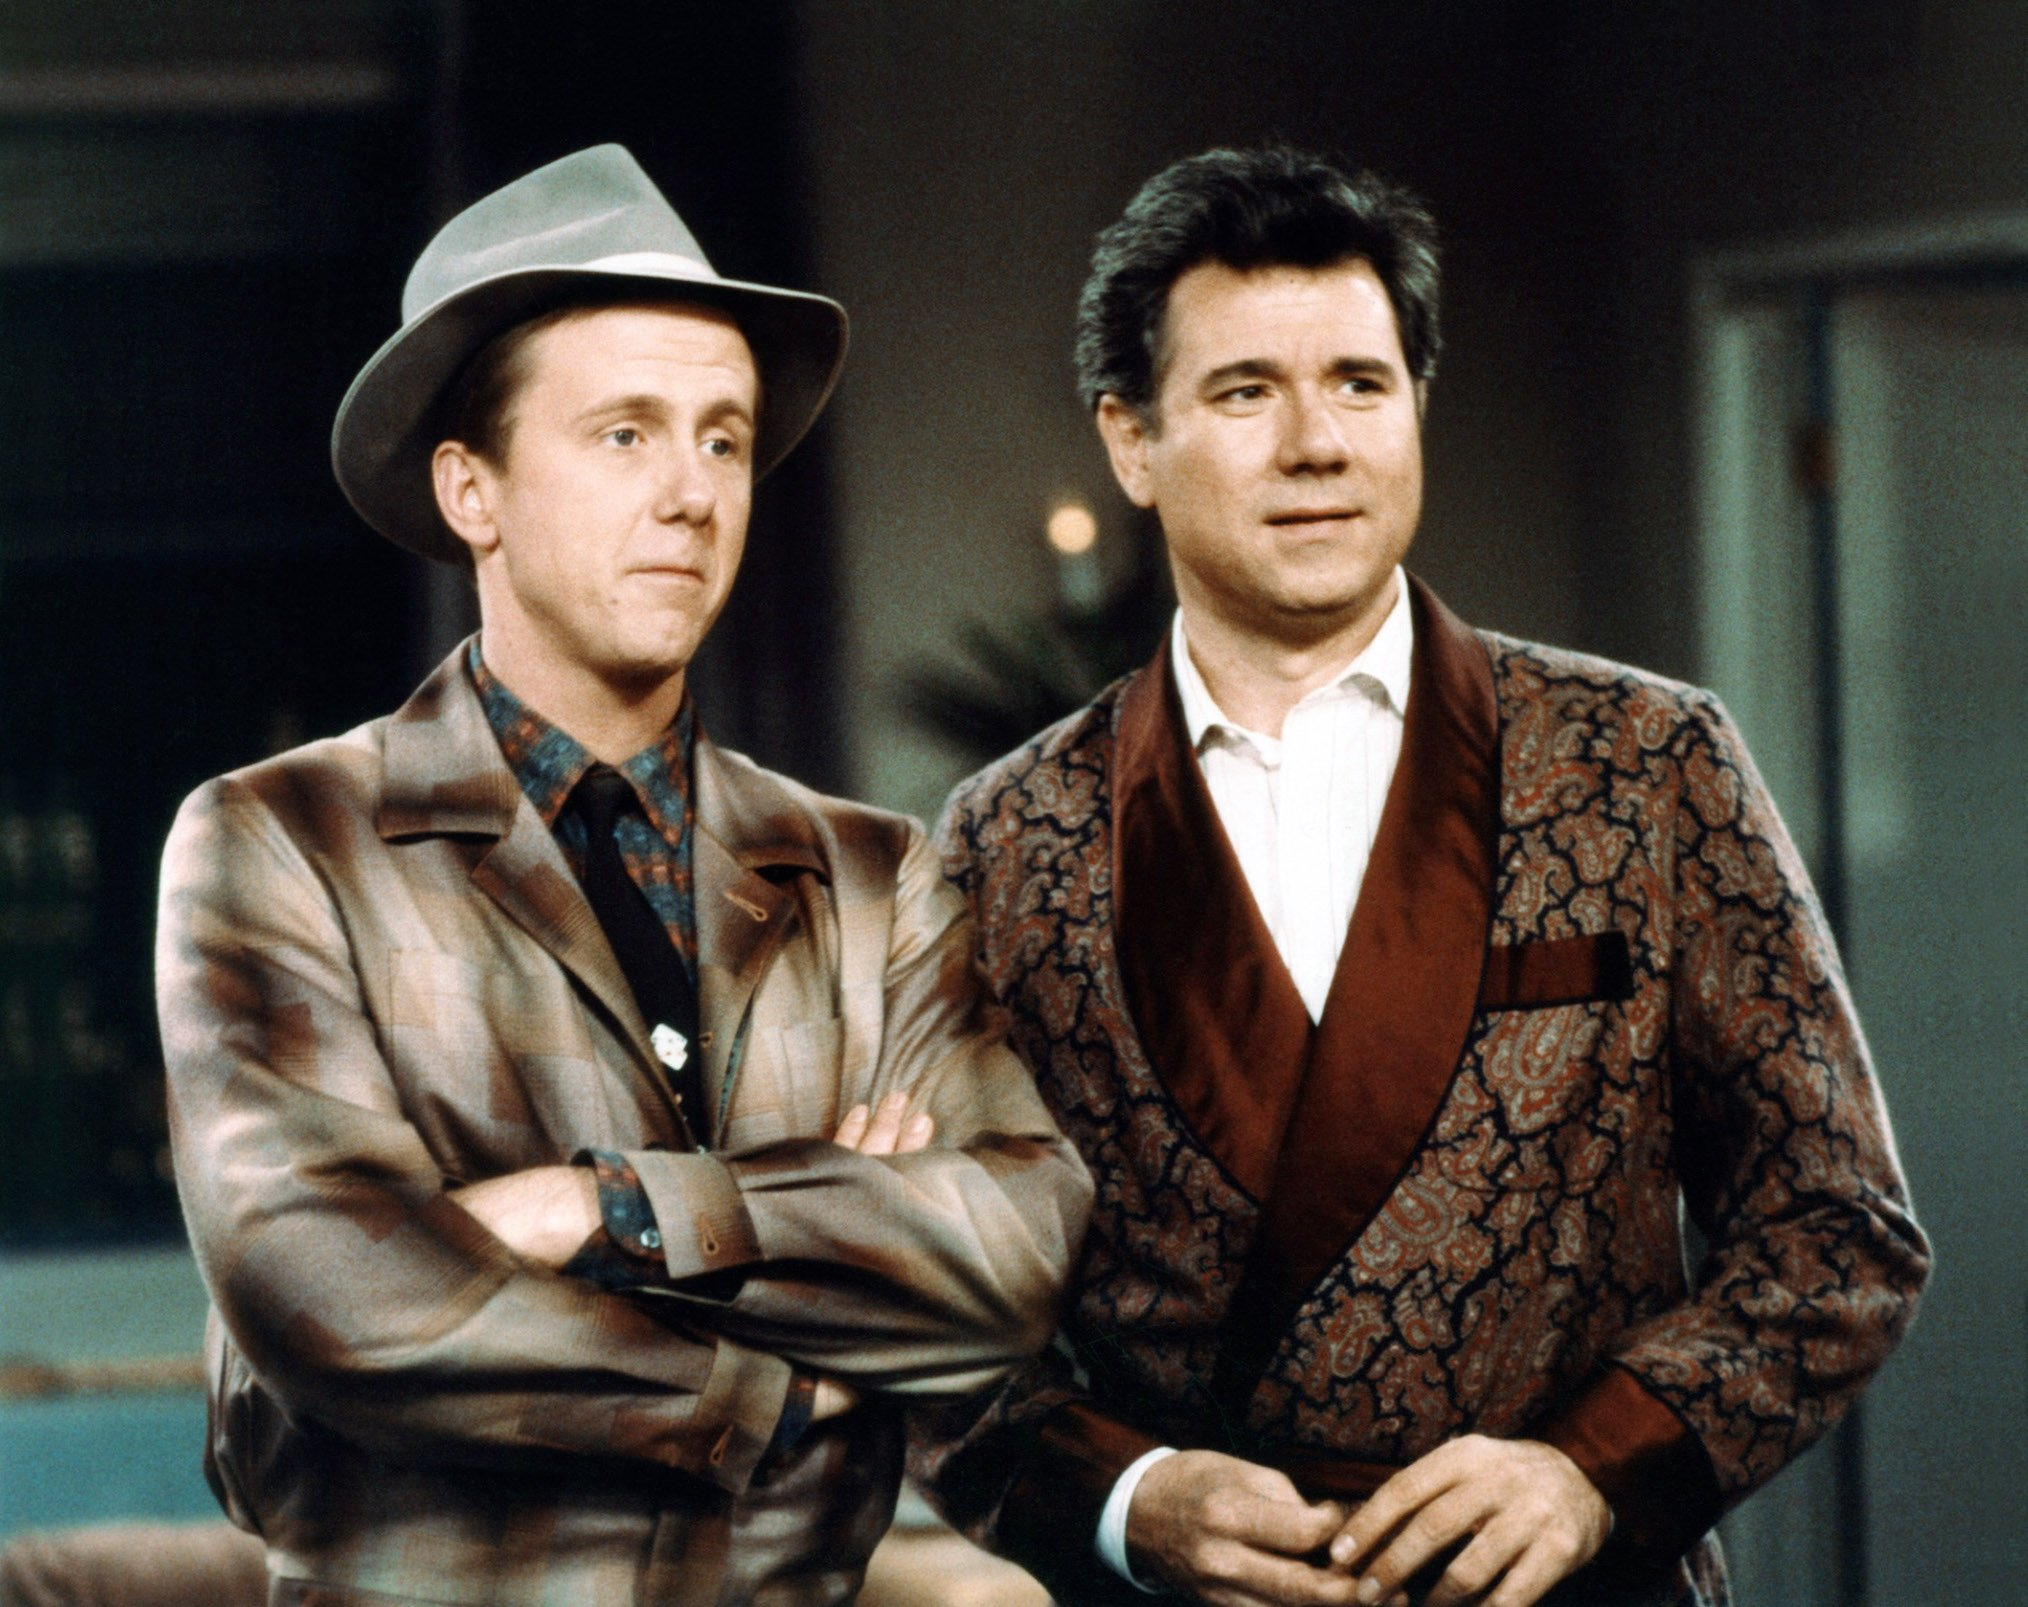 john larroquette night court 20 Things You Probably Didn't Know About Night Court